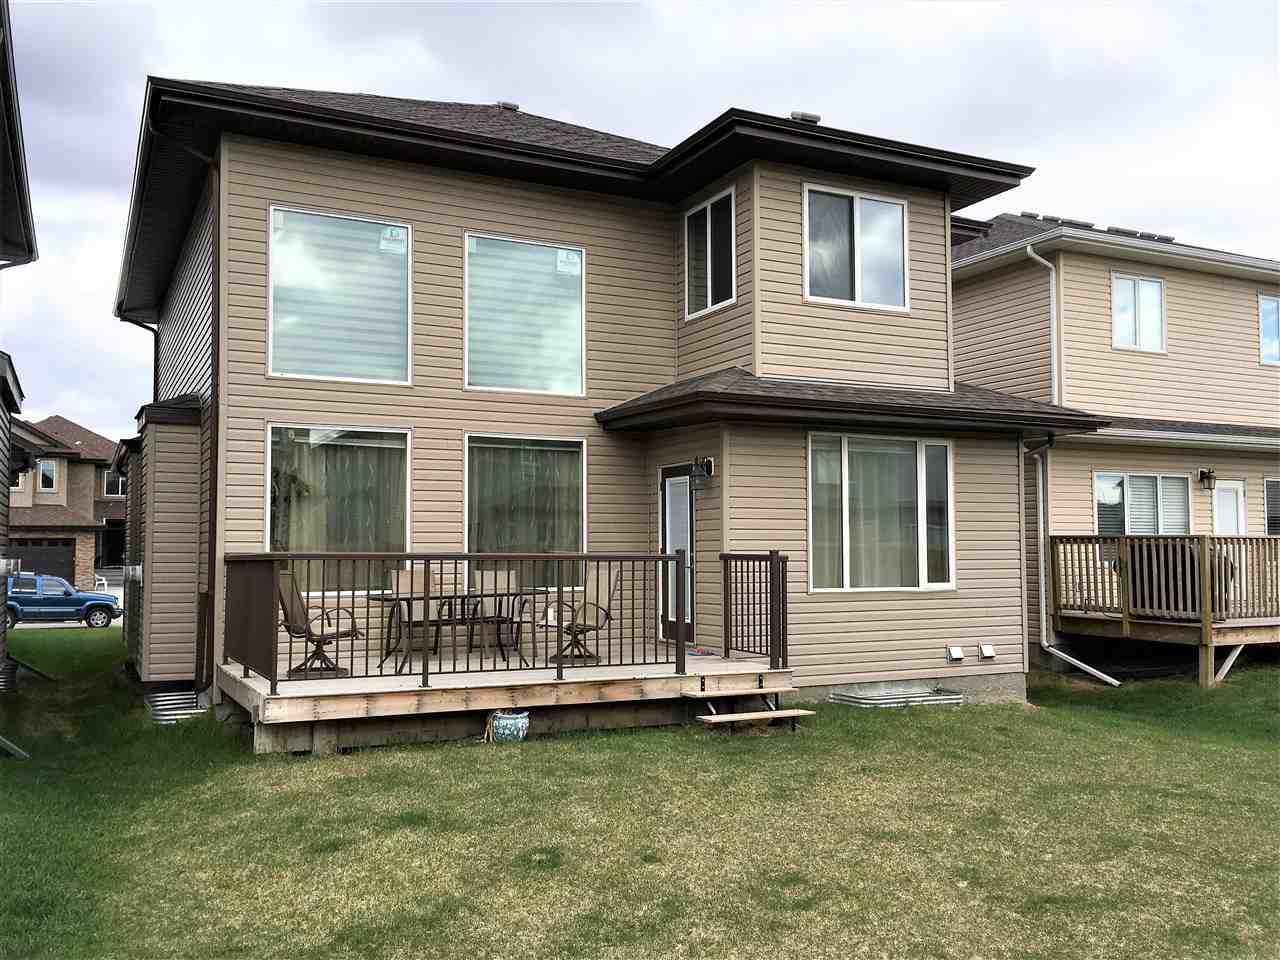 Photo 26: 16512 131 Street in Edmonton: Zone 27 House for sale : MLS(r) # E4059959